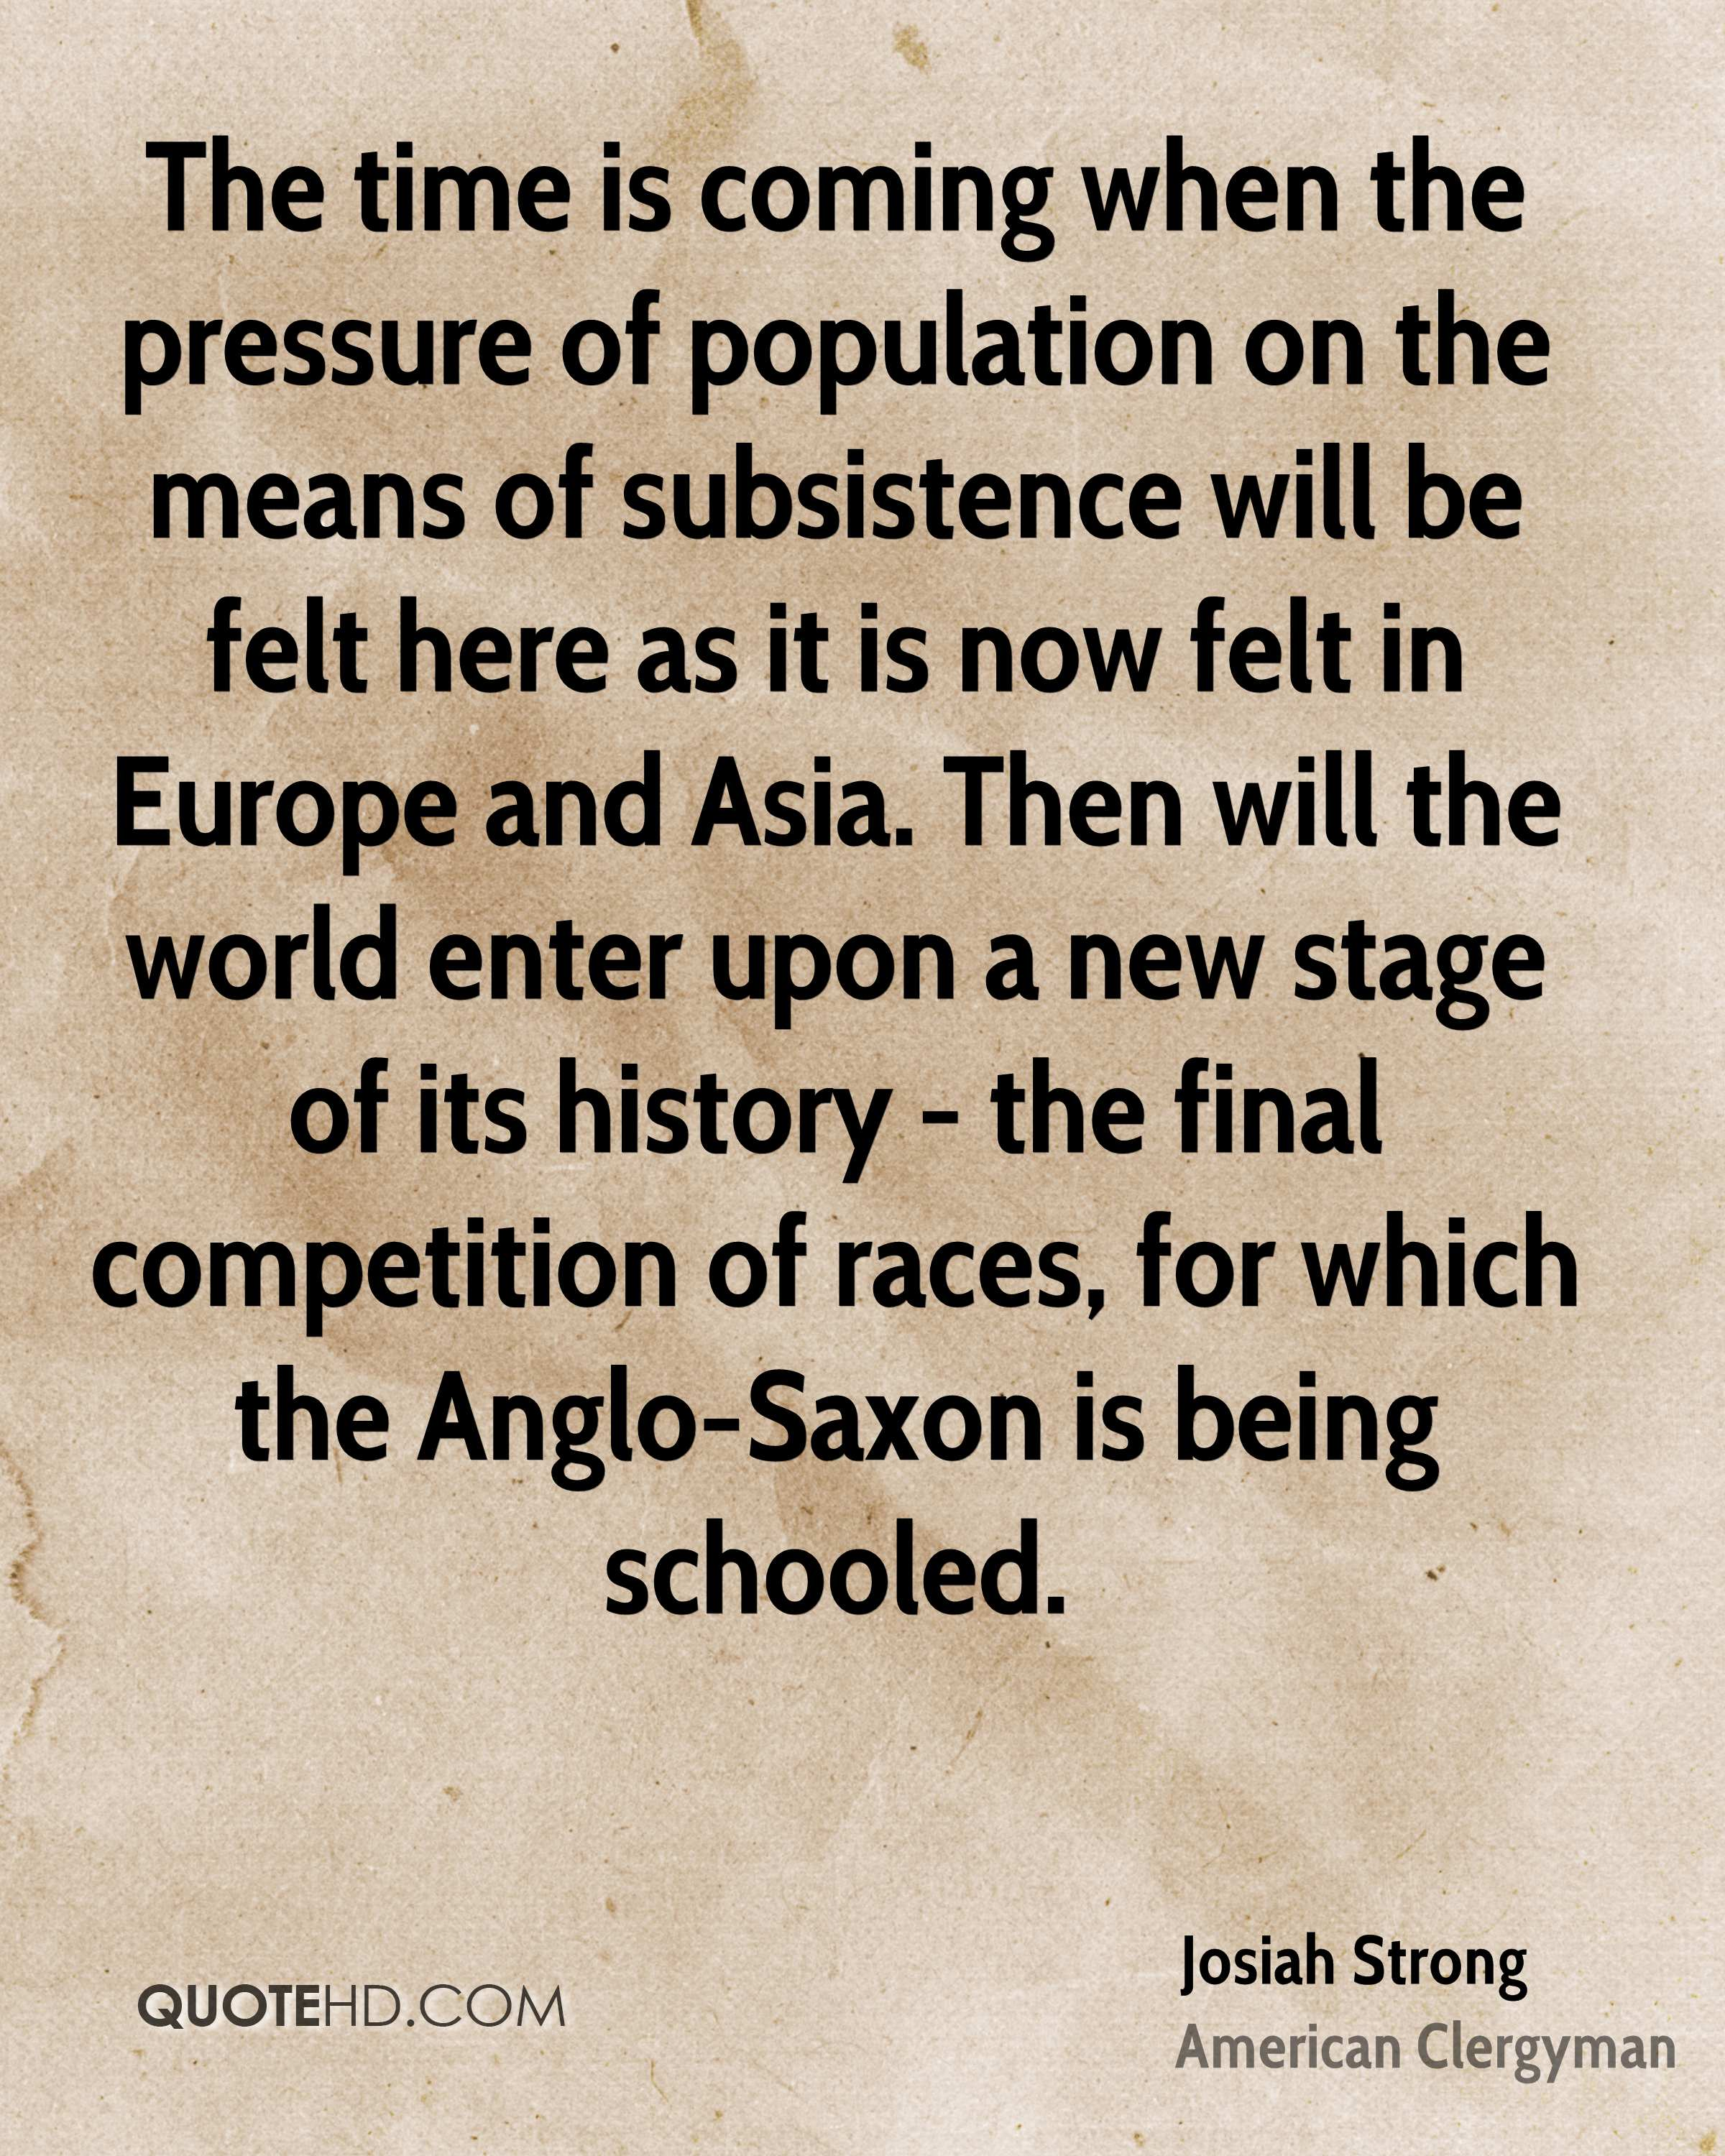 The time is coming when the pressure of population on the means of subsistence will be felt here as it is now felt in Europe and Asia. Then will the world enter upon a new stage of its history - the final competition of races, for which the Anglo-Saxon is being schooled.